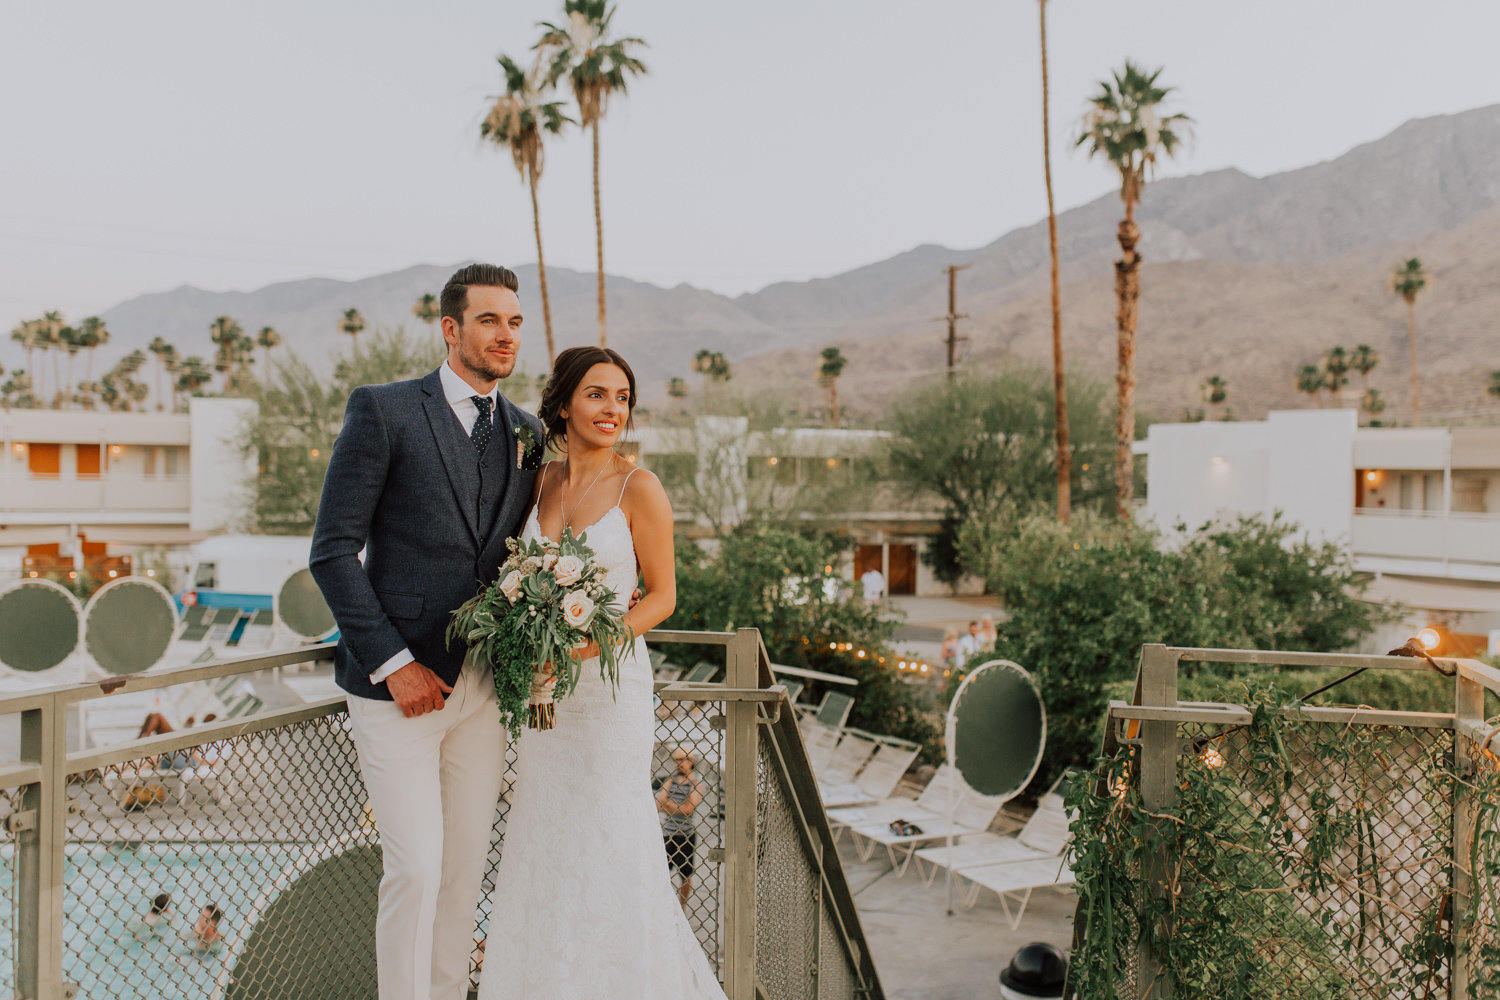 Brianna Broyles_Palm Springs Wedding Photographer_Ace Hotel Wedding_Ace Hotel Palm Springs-78